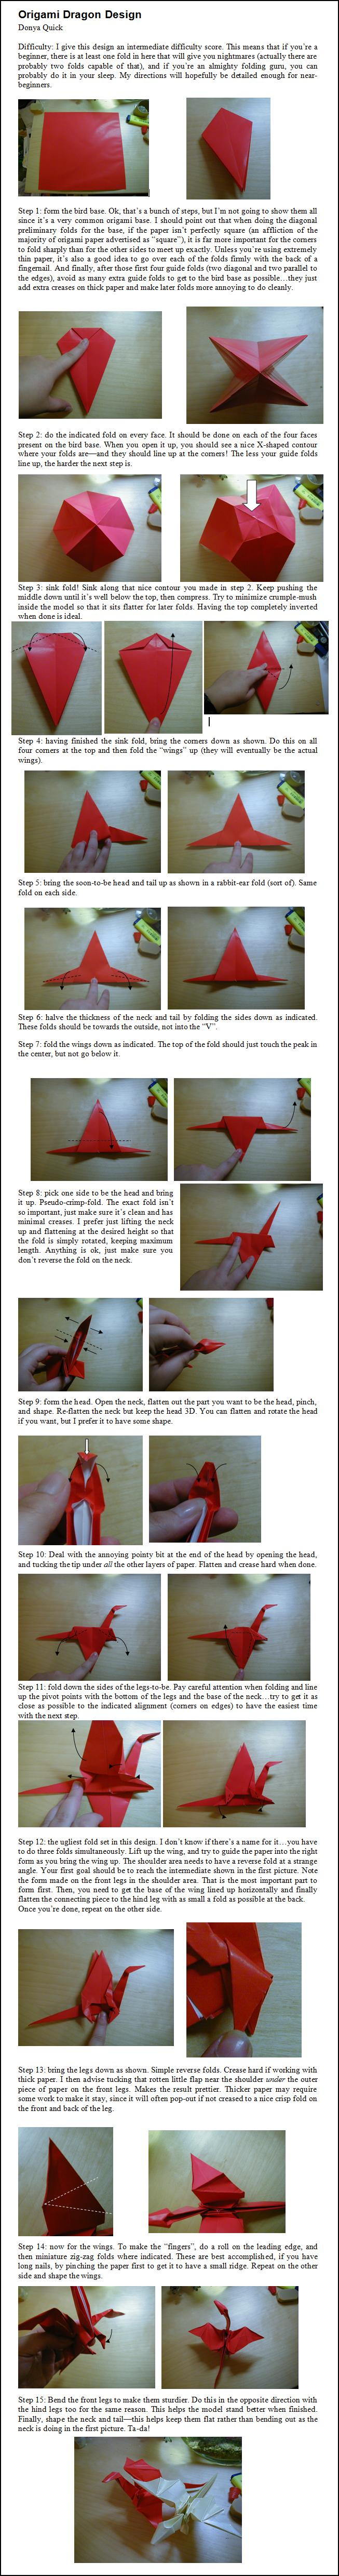 Origami Dragon Face Instructions | Free Printable Papercraft Templates | 4958x653